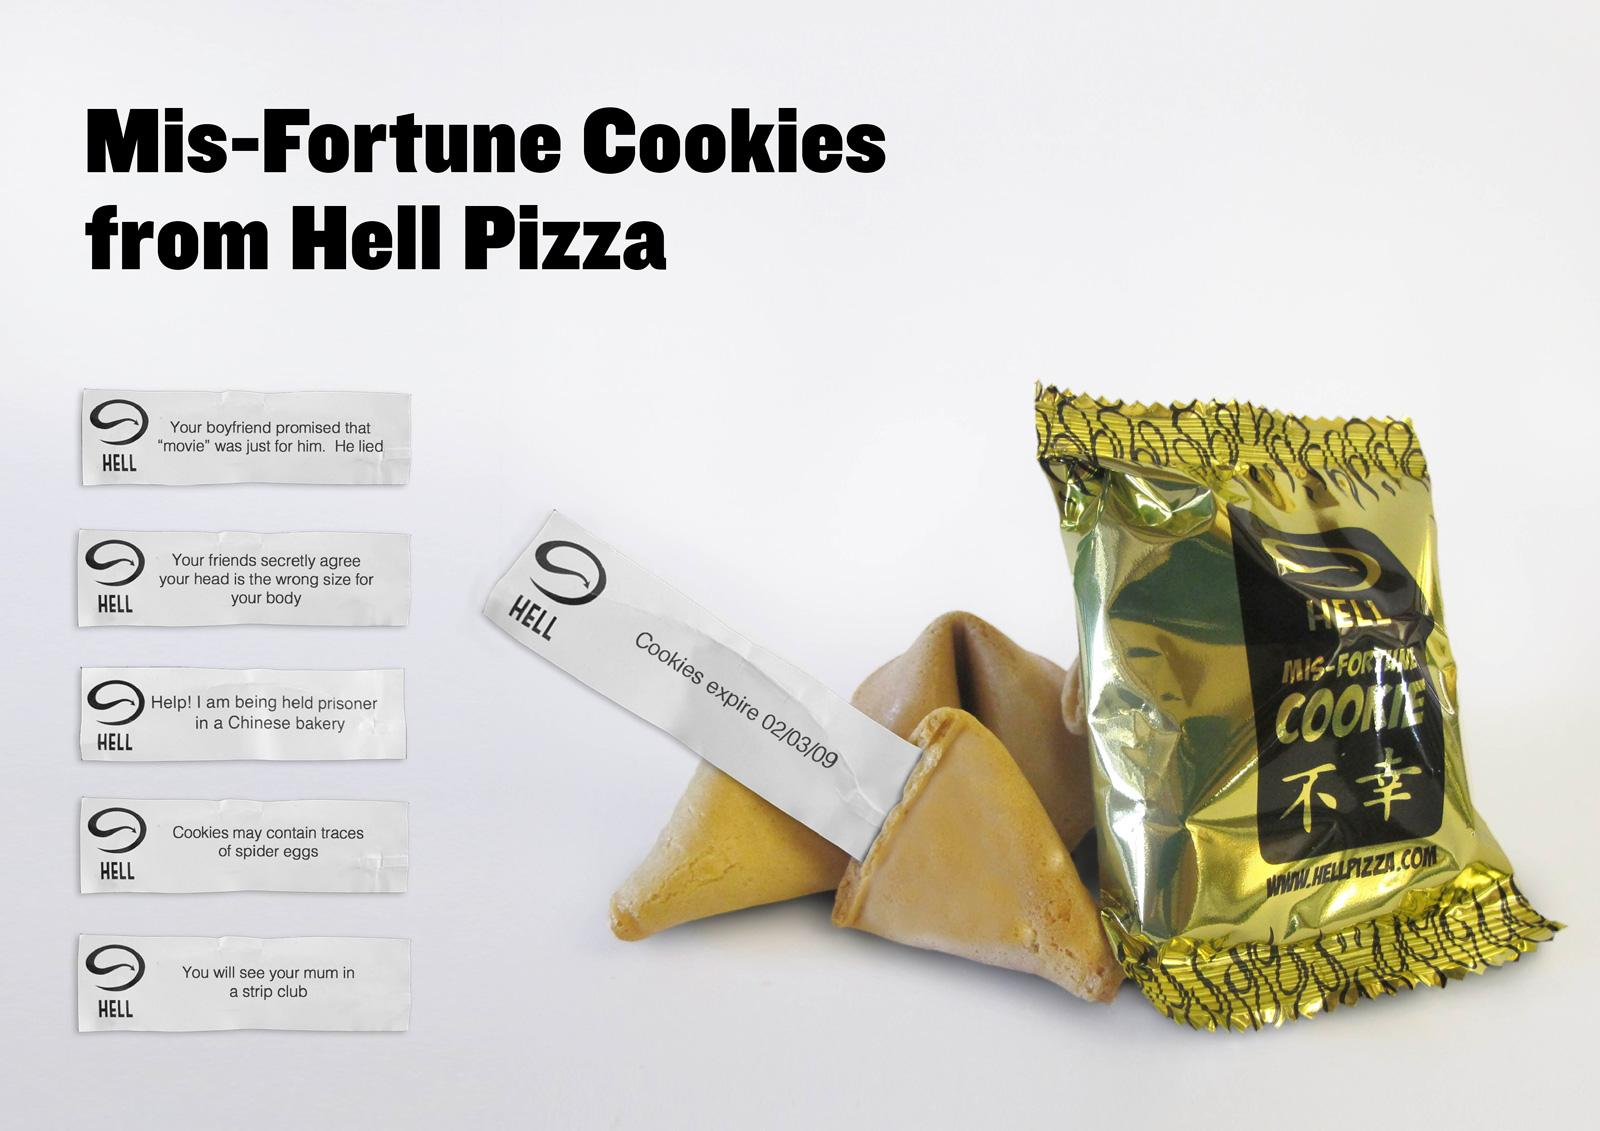 Hell Pizza Direct Ad -  Mis-Fortune Cookies